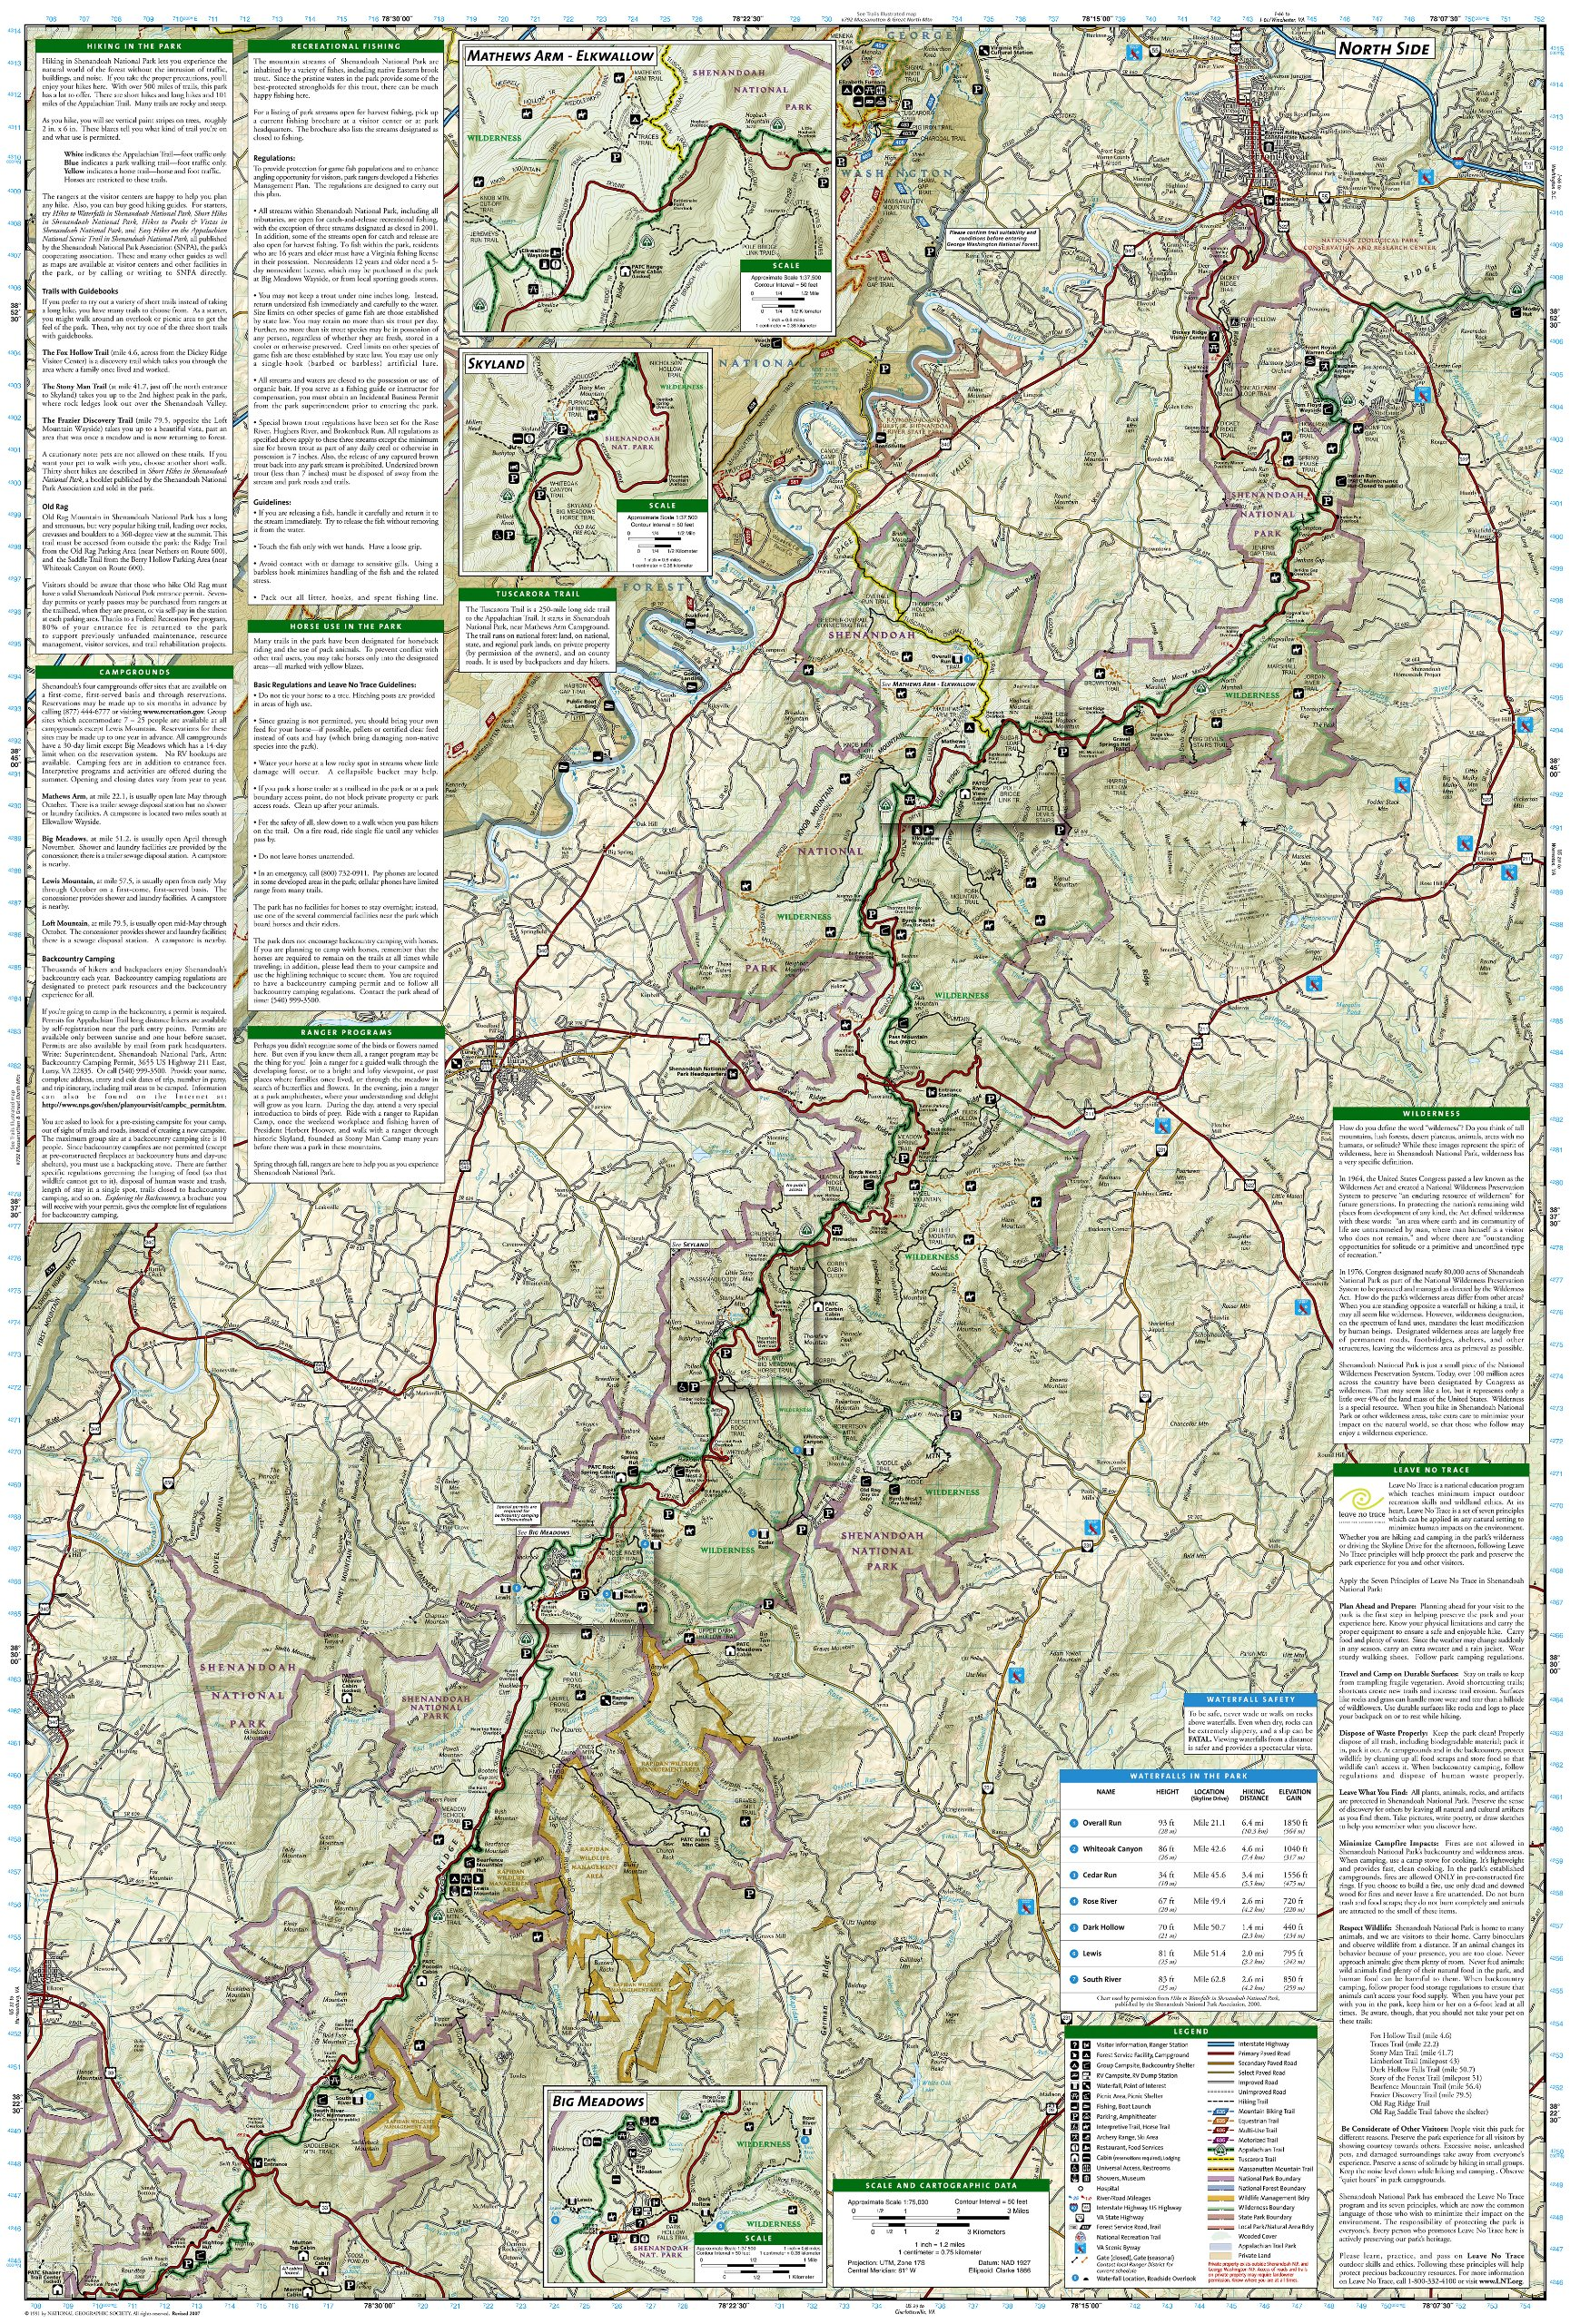 Shenandoah National Park National Geographic Trails Illustrated Map